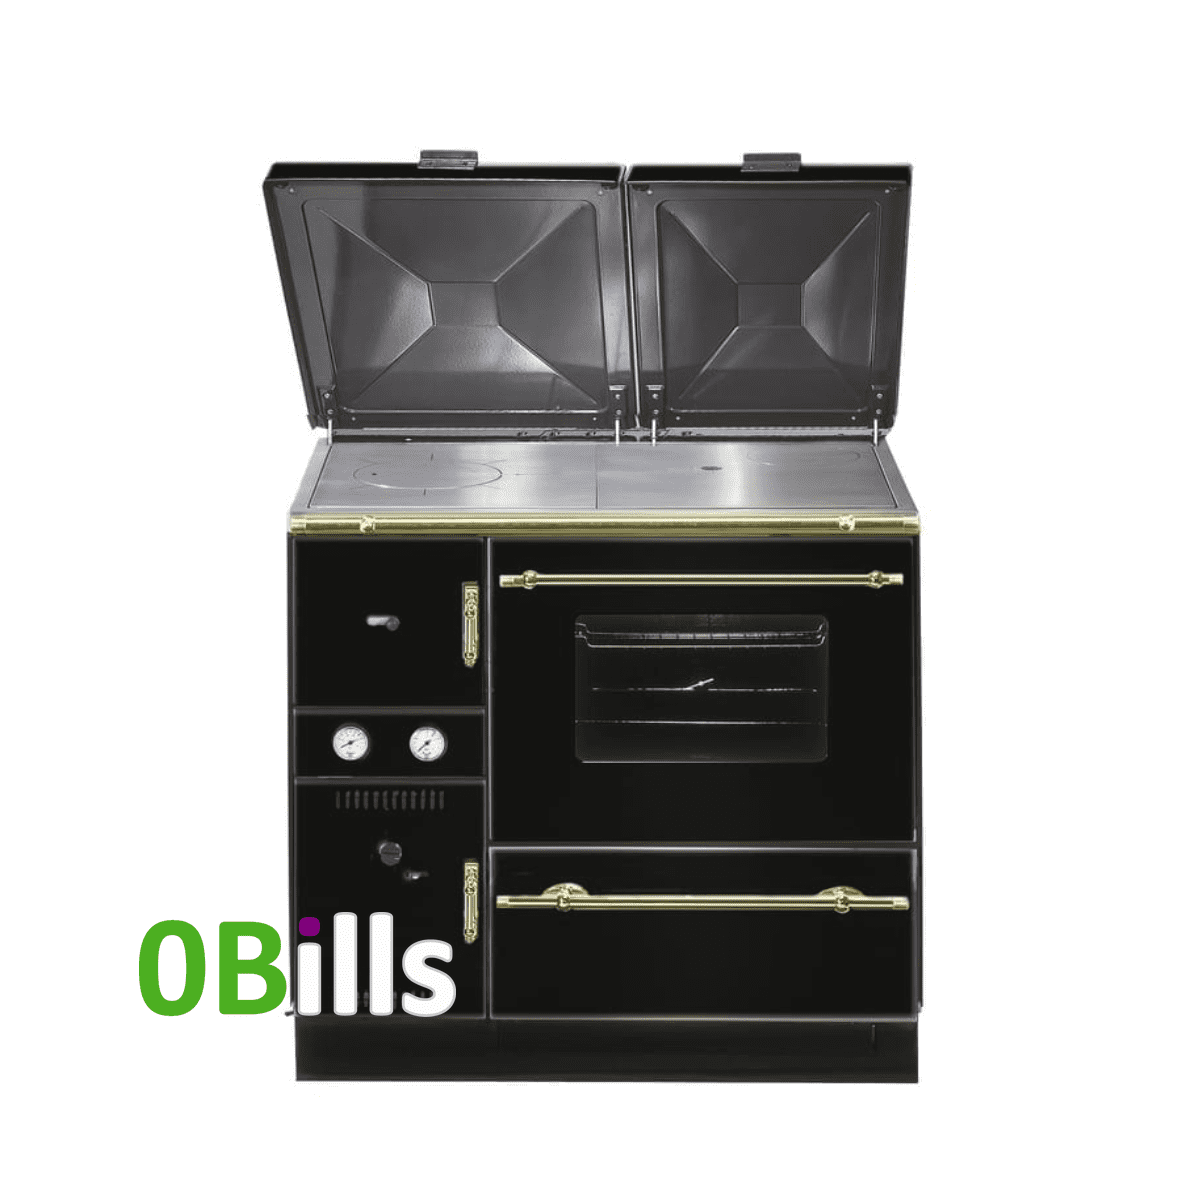 Wamsler 900 Series (K148) central heating cooker stove BLACK (Right)